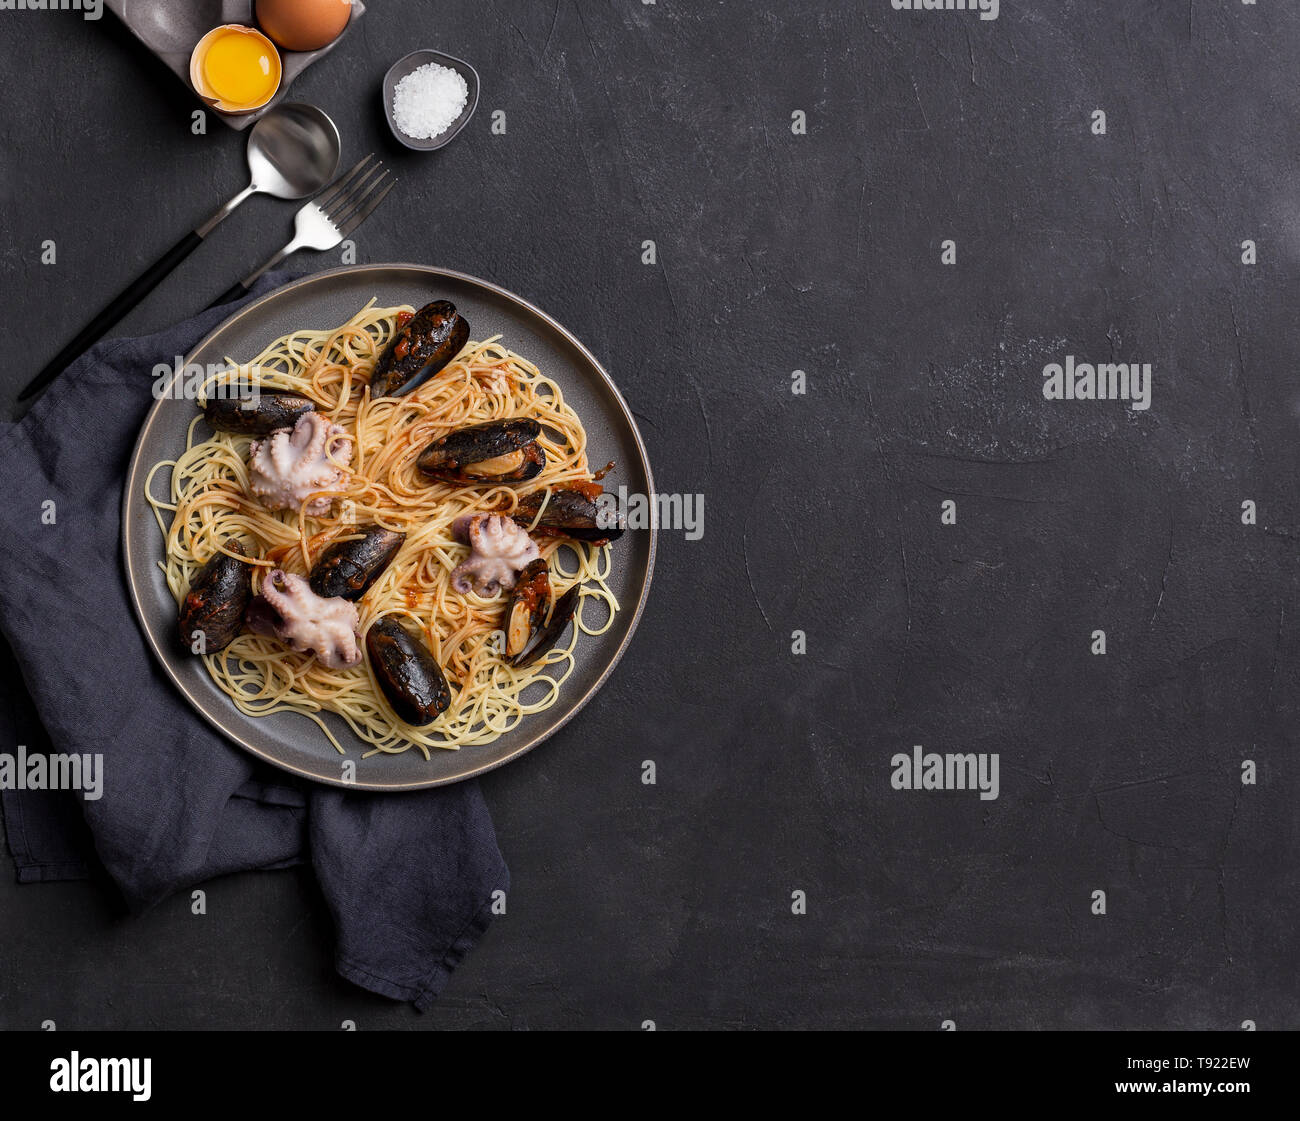 Copy space for text. Mediterranean pasta with octopus, mussels and tomatoes souse in plate. Free space for text, background for banner - Stock Image